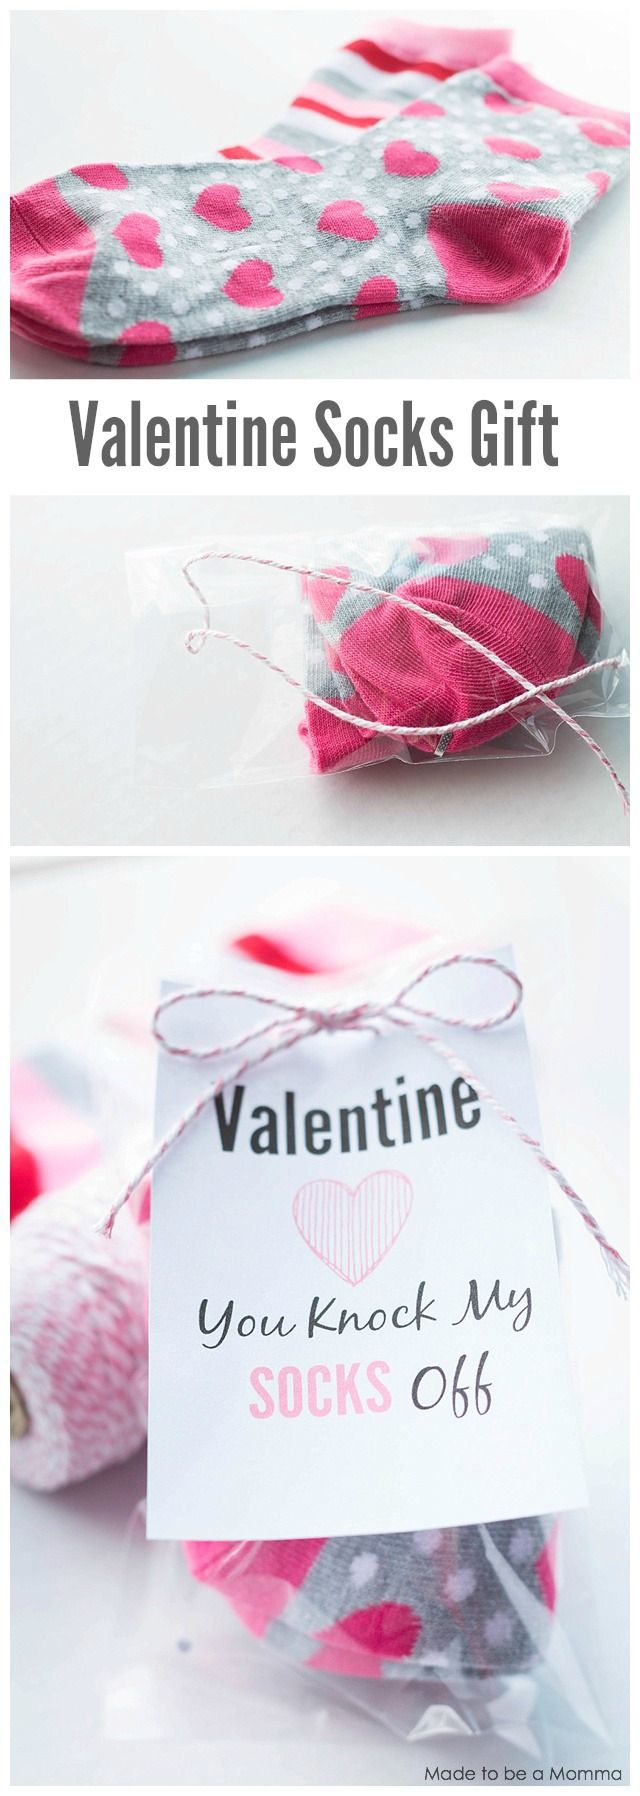 Valentine Socks Gift Idea Get The Free Printable At Madetobeamomma